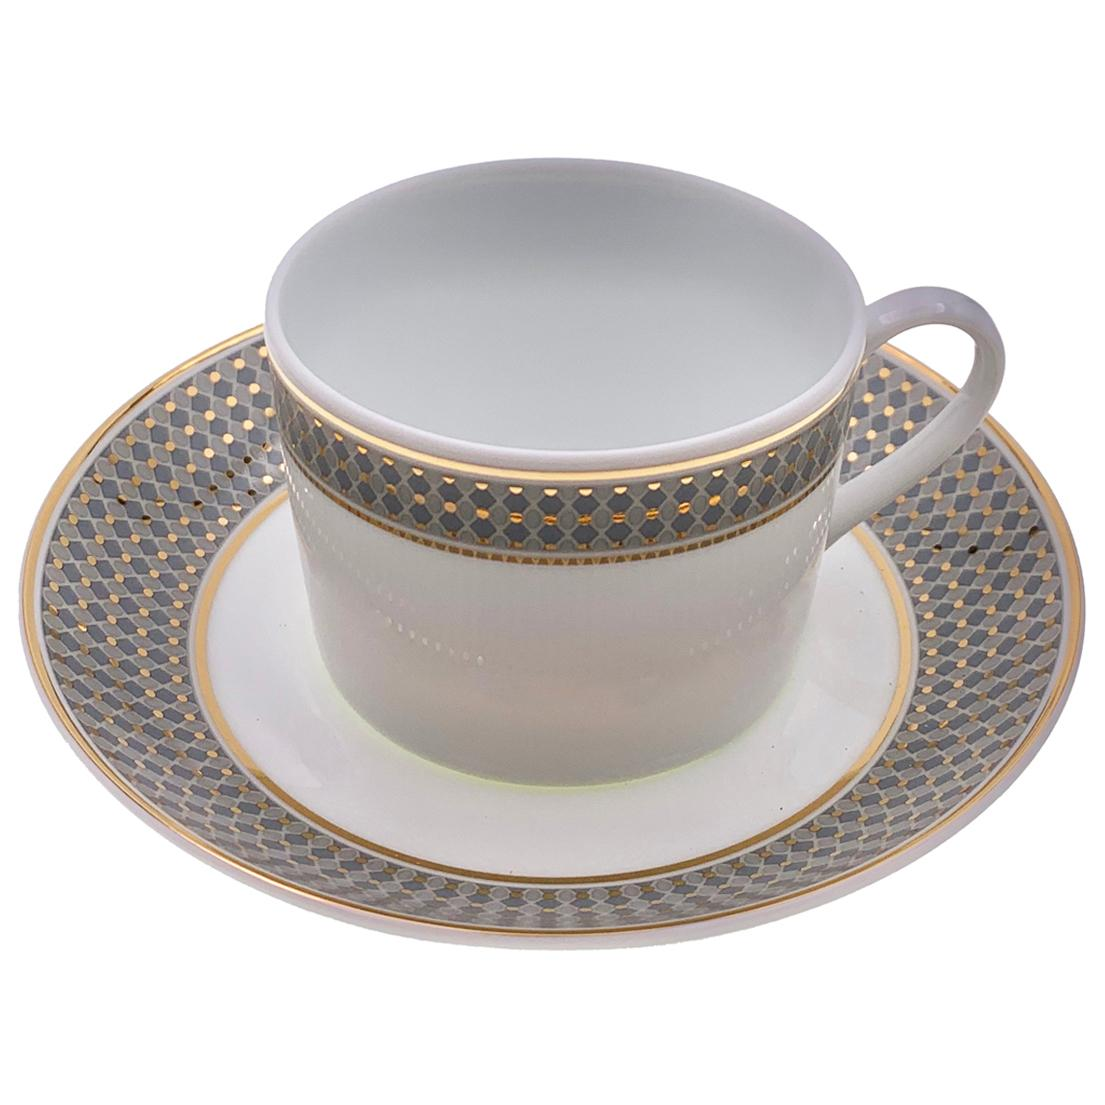 Set of 2 Western Tea Cup with Saucer Modern Vintage André Fu Living Tableware